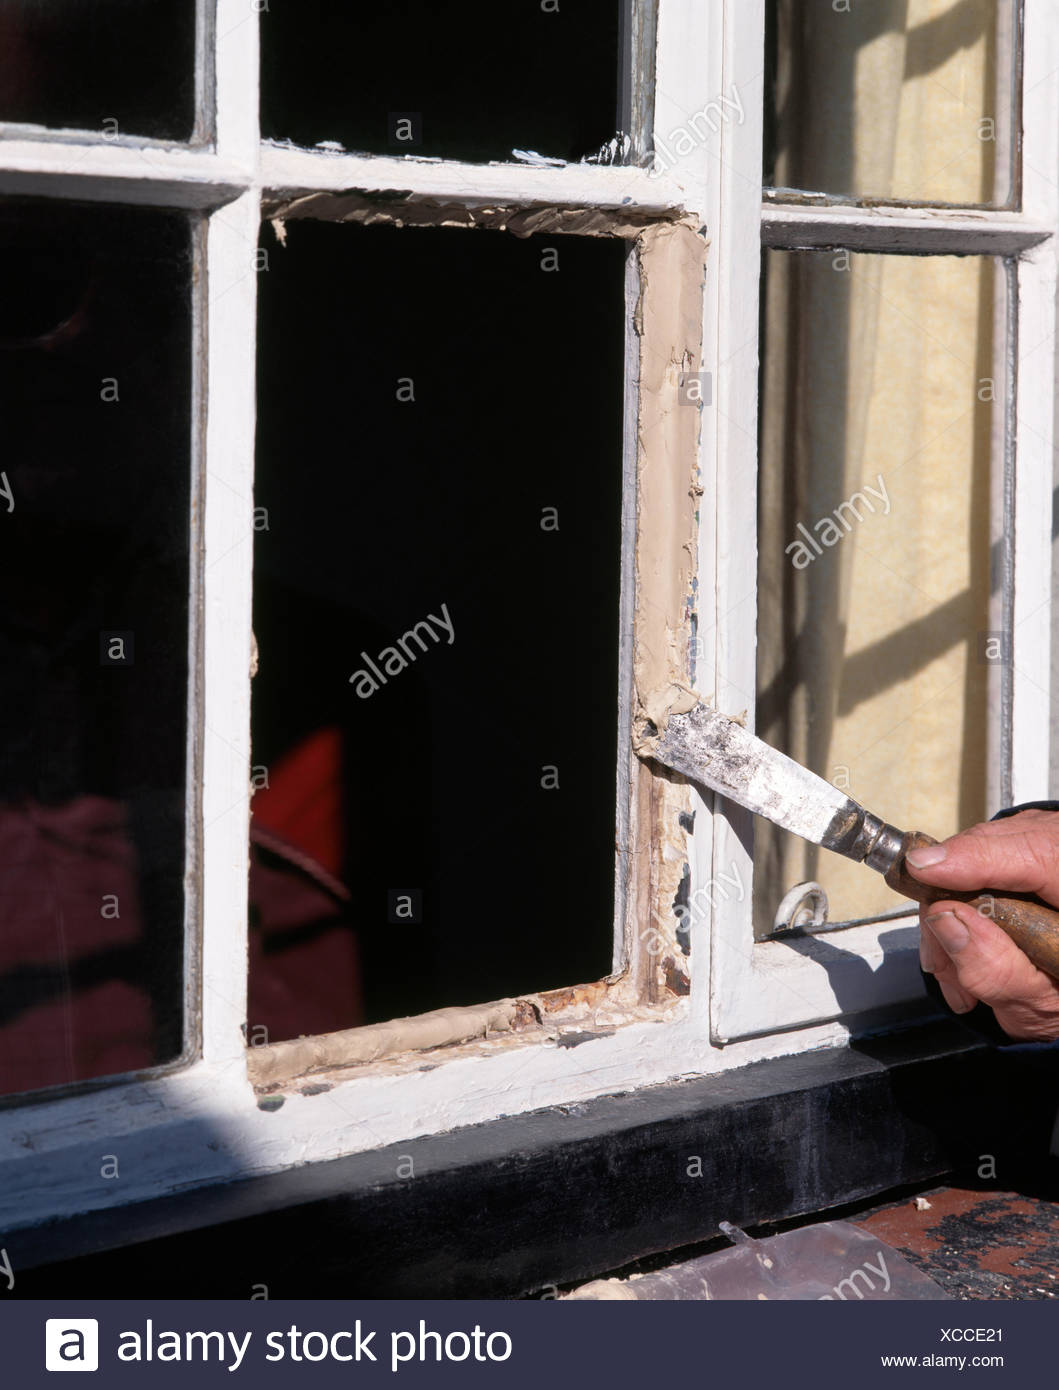 Close-up of hands applying putty to a newly replaced window pane - Stock Image